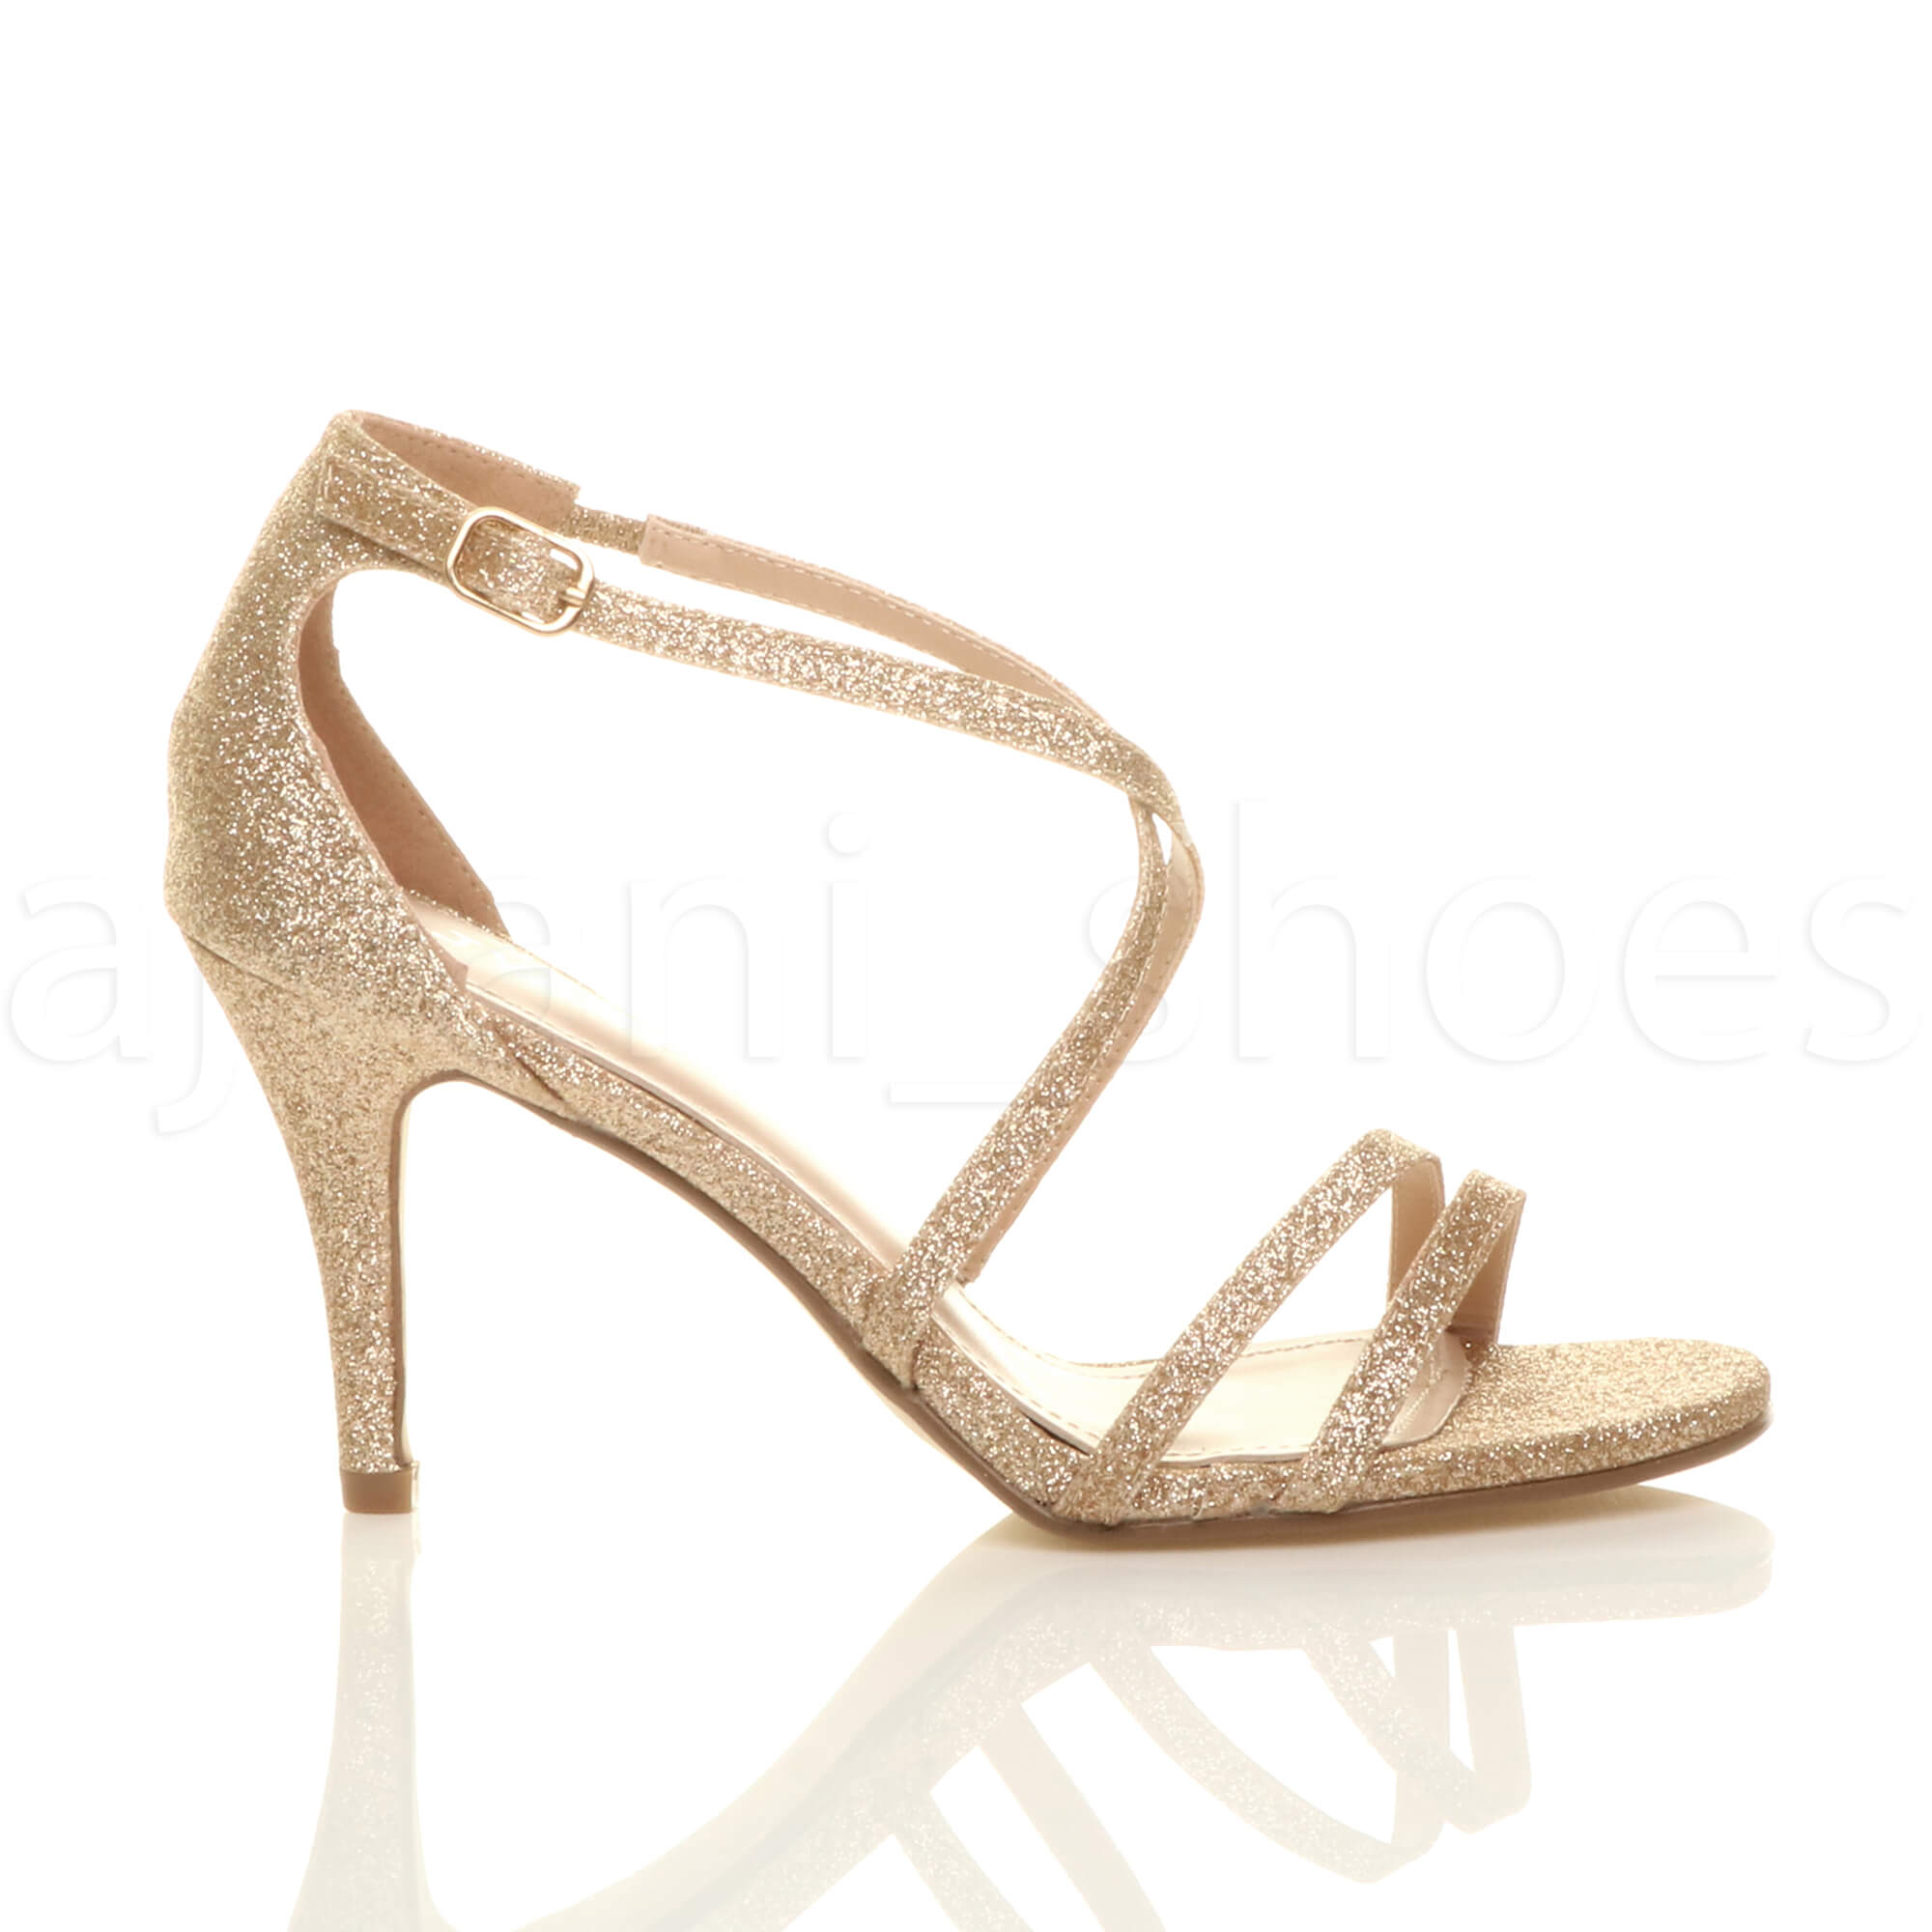 WOMENS-LADIES-MID-HIGH-HEEL-STRAPPY-CROSSOVER-WEDDING-PROM-SANDALS-SHOES-SIZE thumbnail 52